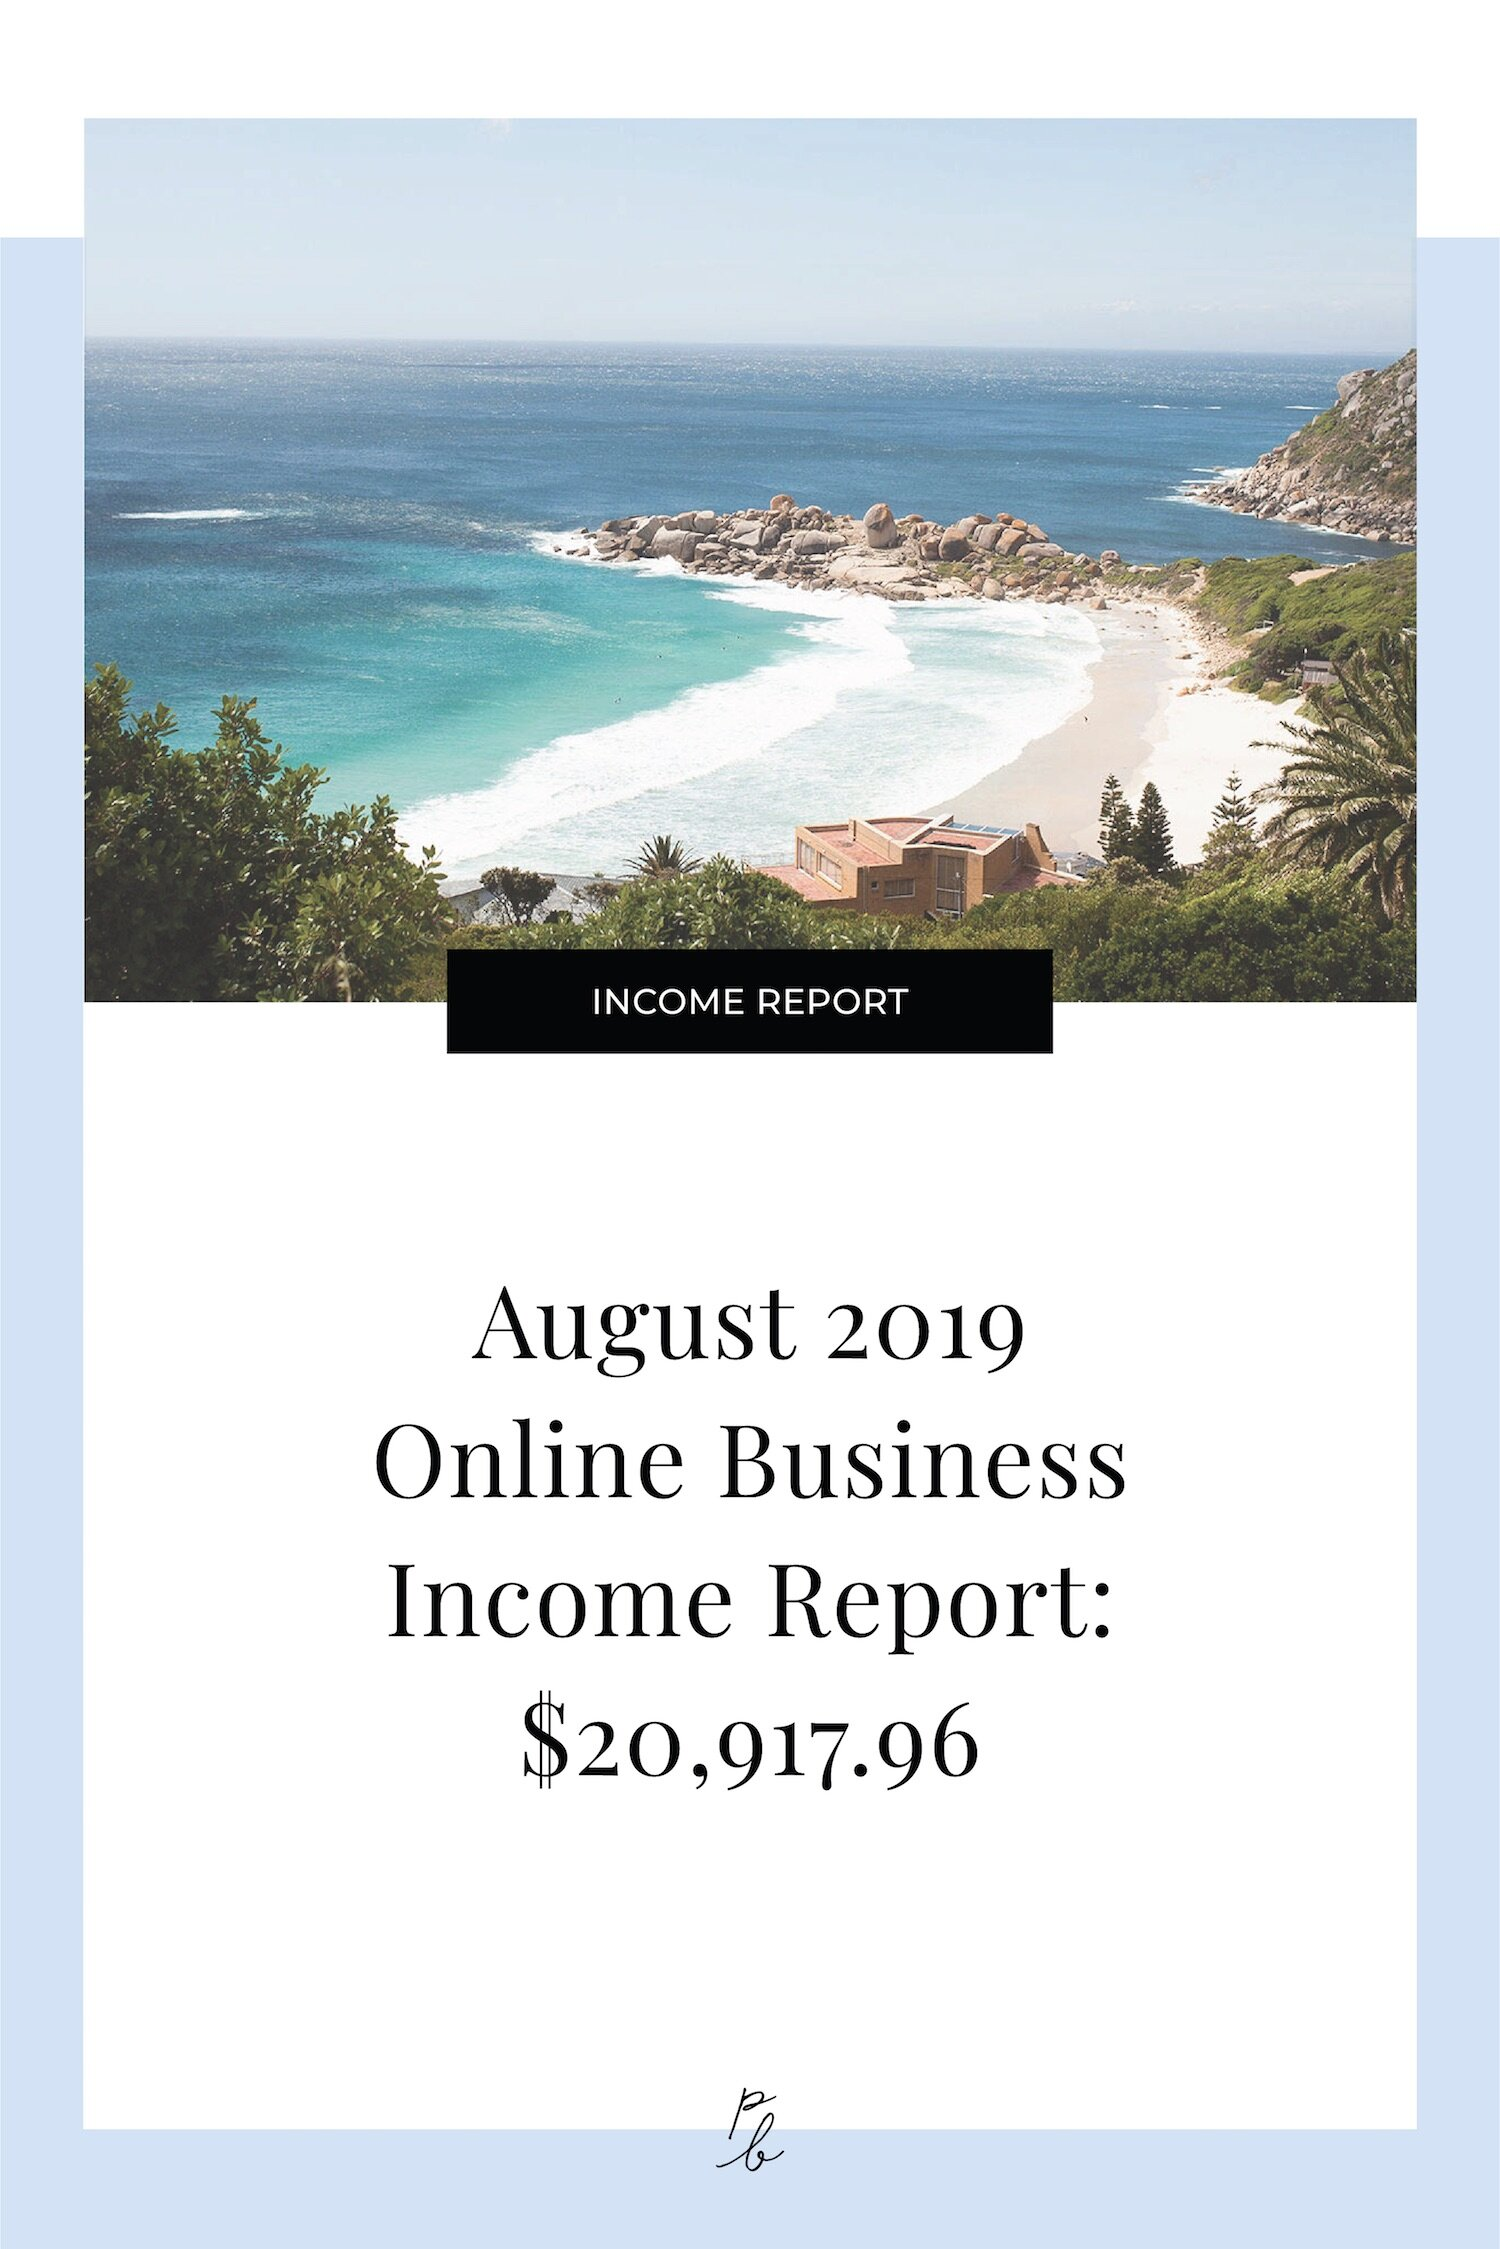 August 2019 Online Business Income Report-06.jpg